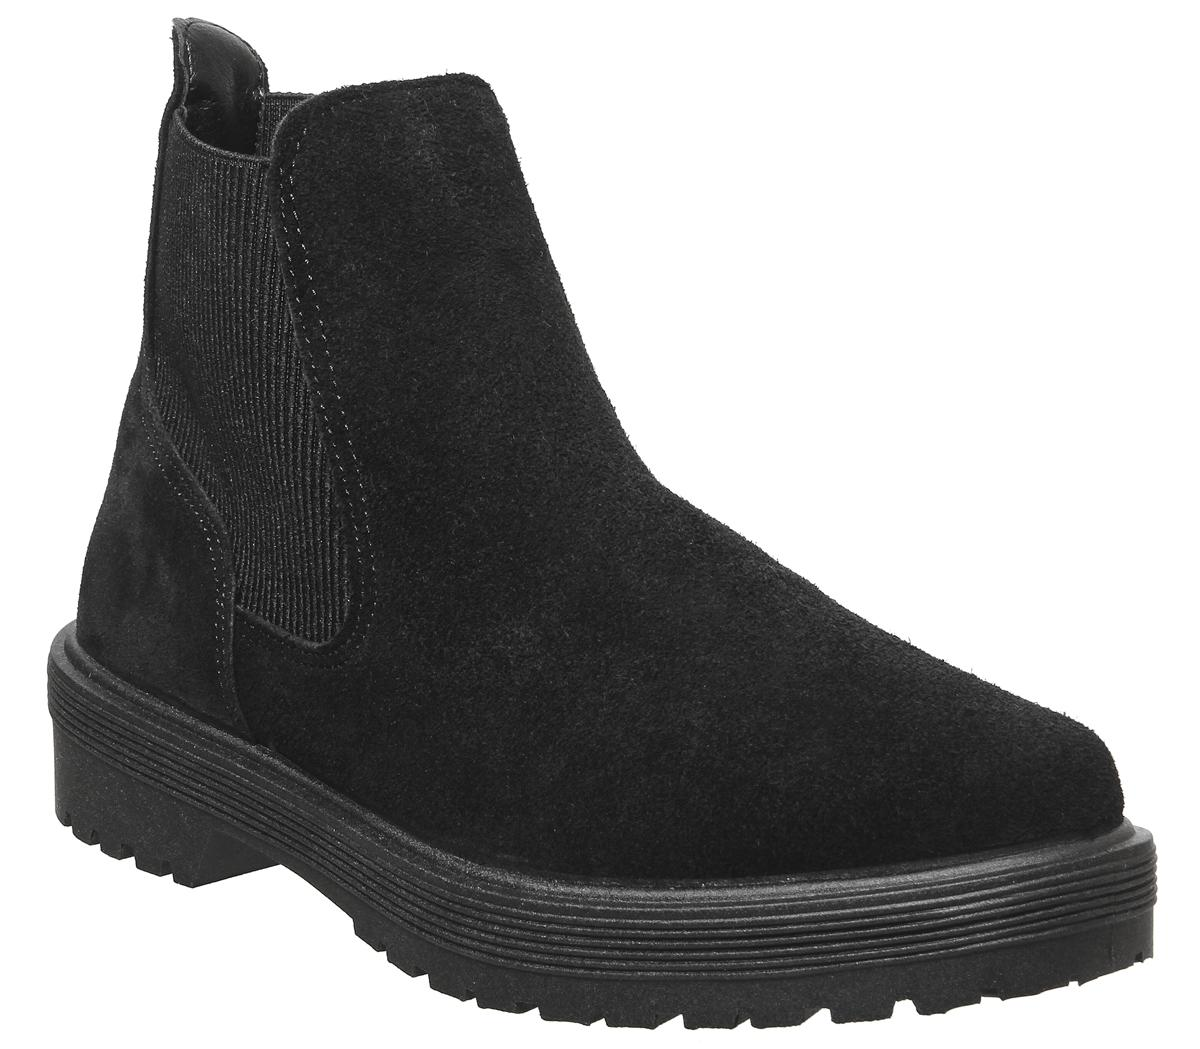 Archie Chelsea Boots